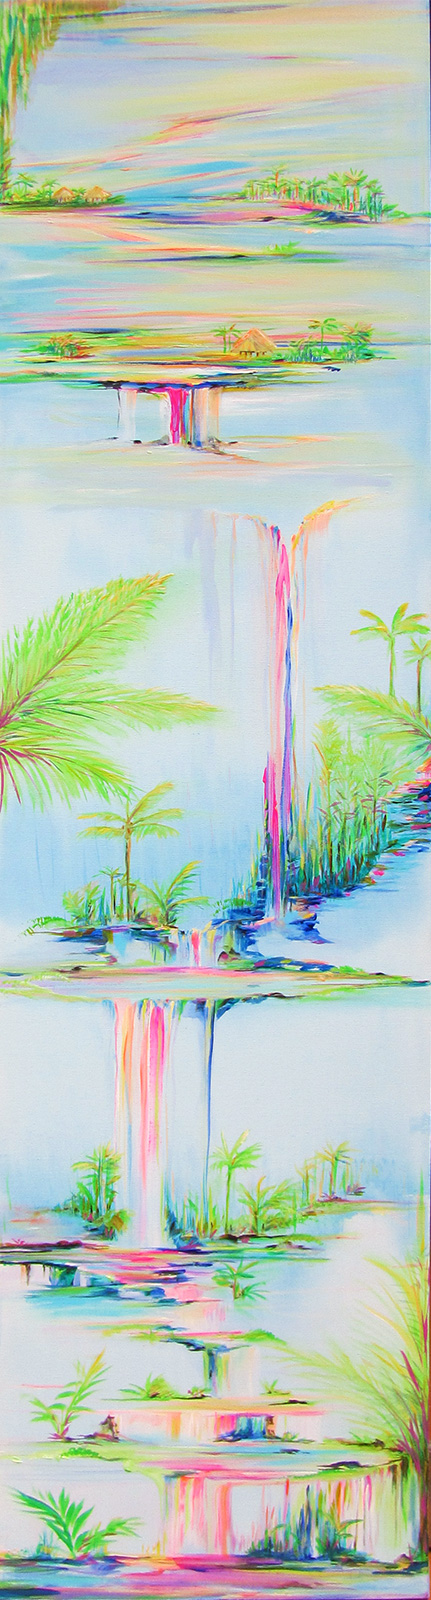 Painting of a long series of tropical scenes with multiple colorful waterfalls